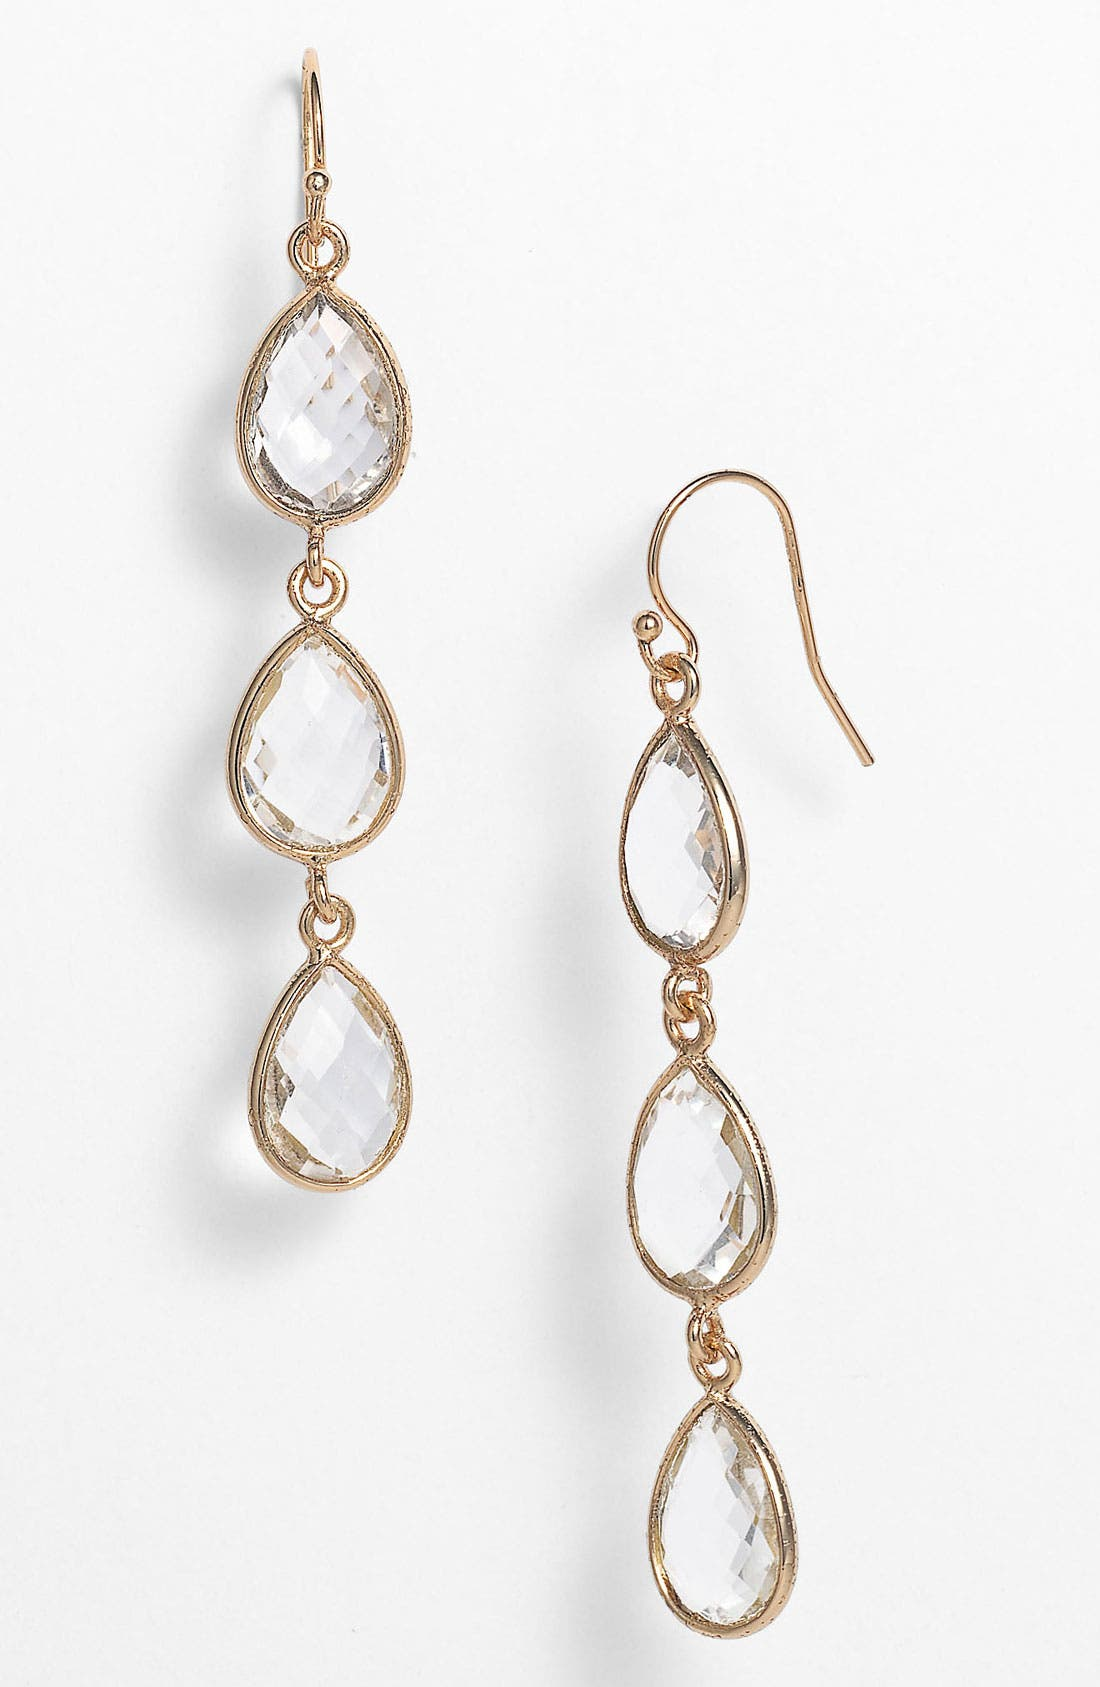 Main Image - NuNu Designs Teardrop Earrings